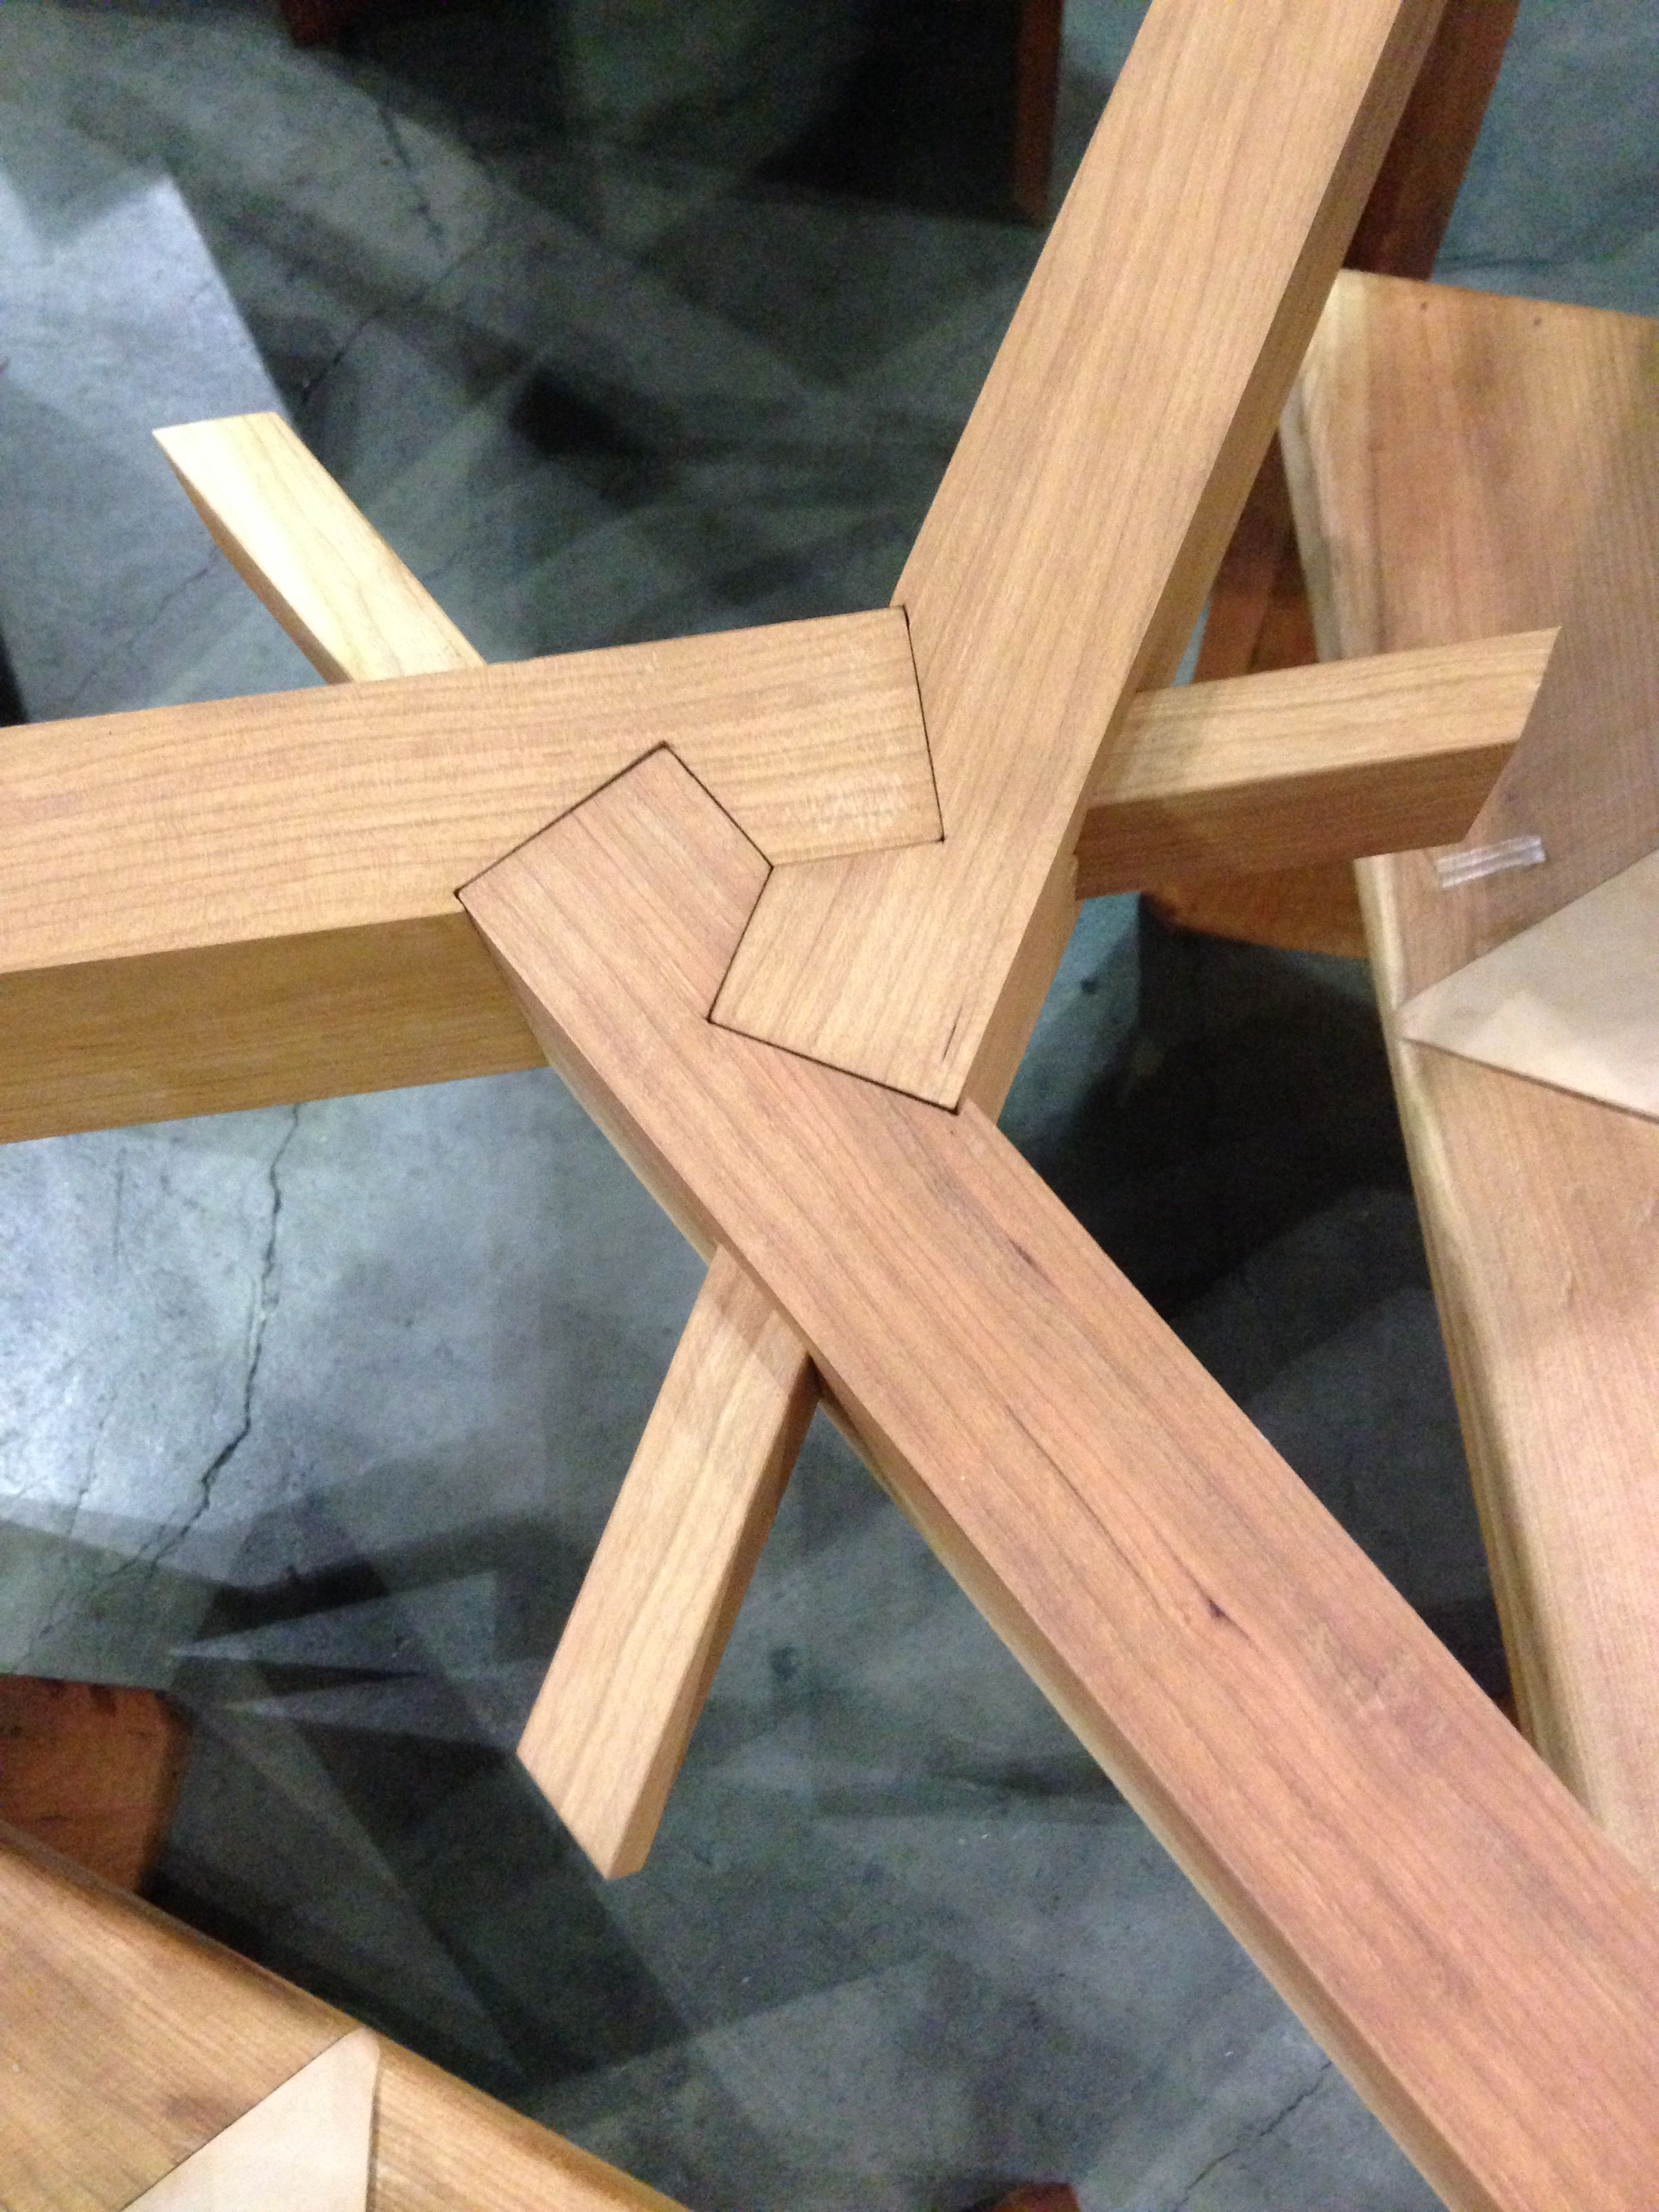 Steel Chair Joints Spandex Covers Canada Complex Wood Joinery Google Search Woodworking